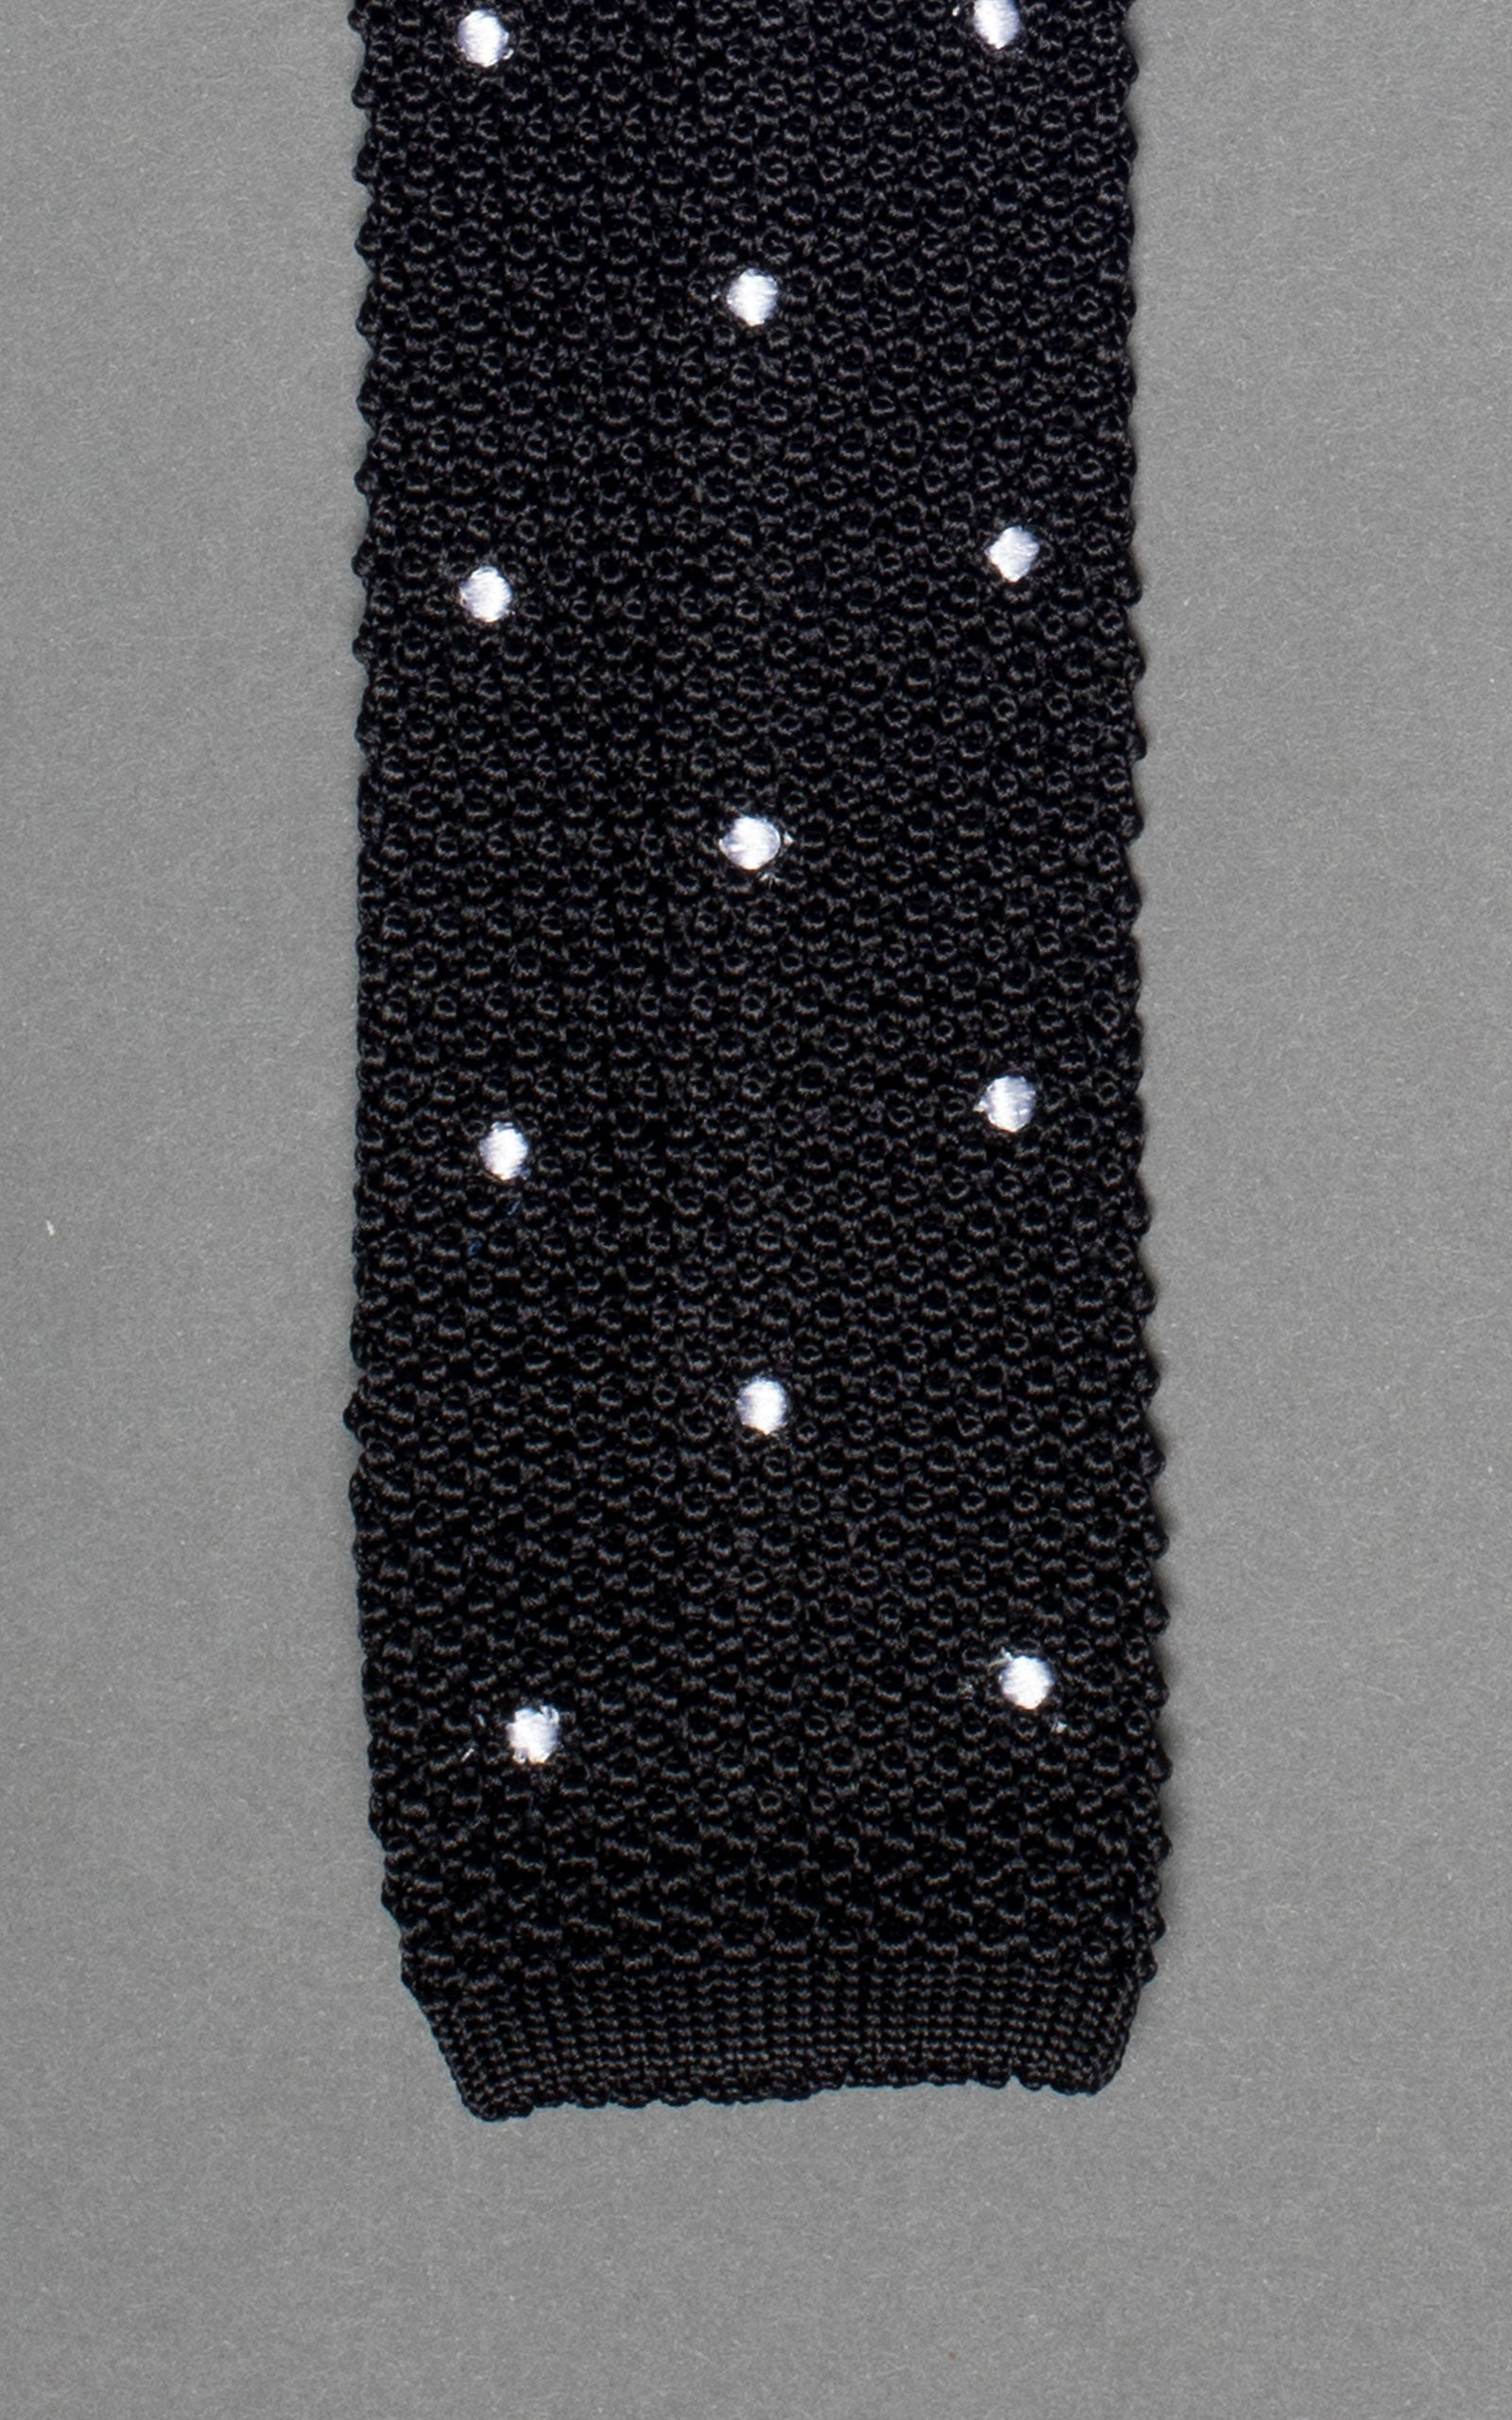 Black With White Polka Dots Knitted Silk Tie